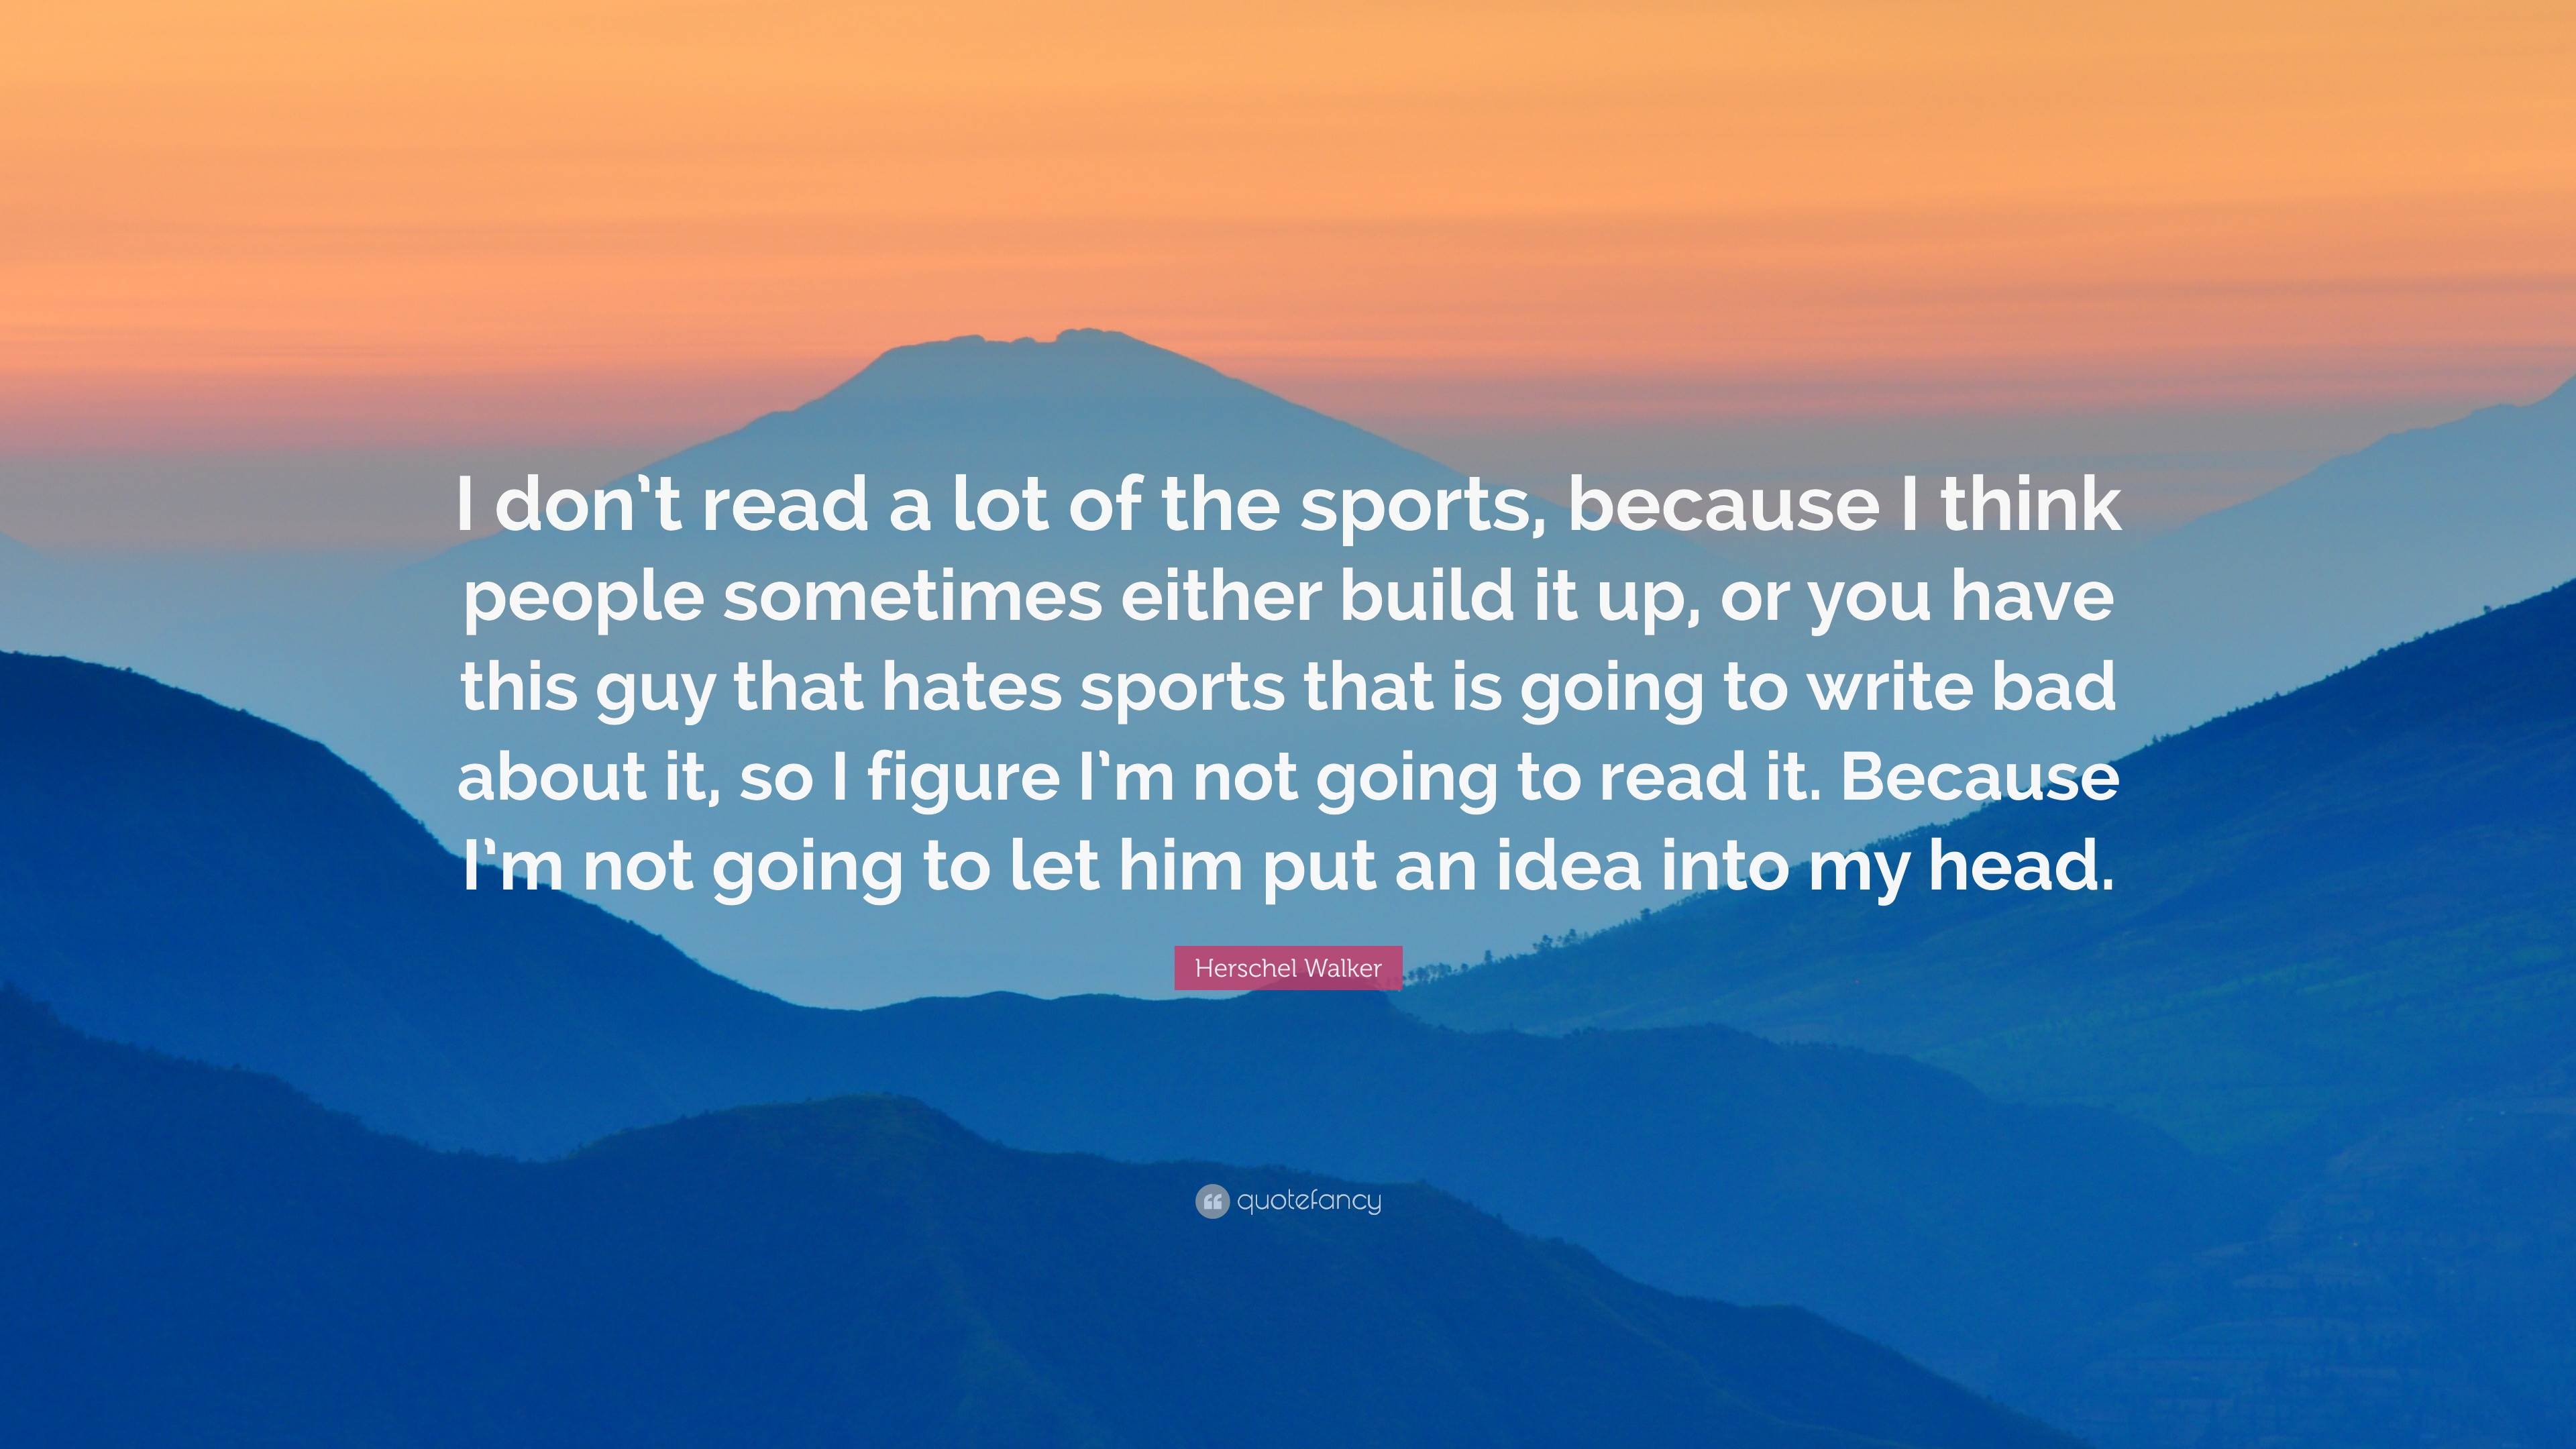 So Have You Actually Read Walkers >> Herschel Walker Quote I Don T Read A Lot Of The Sports Because I